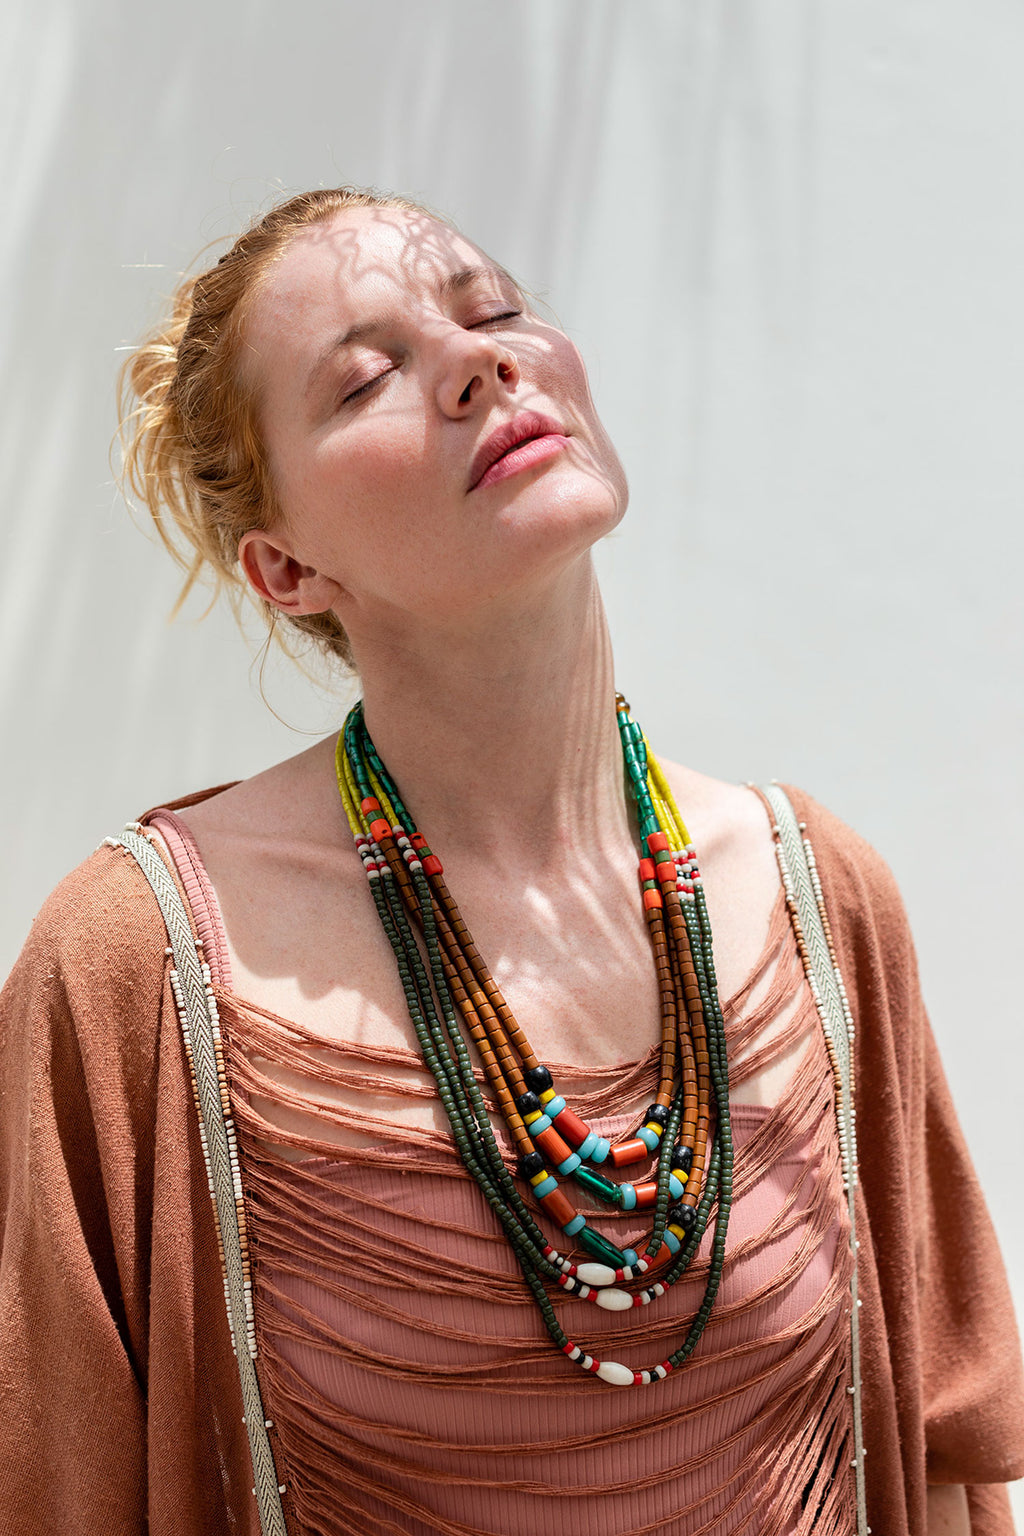 Khaki Tribal Necklace with Colorful Glass Beads